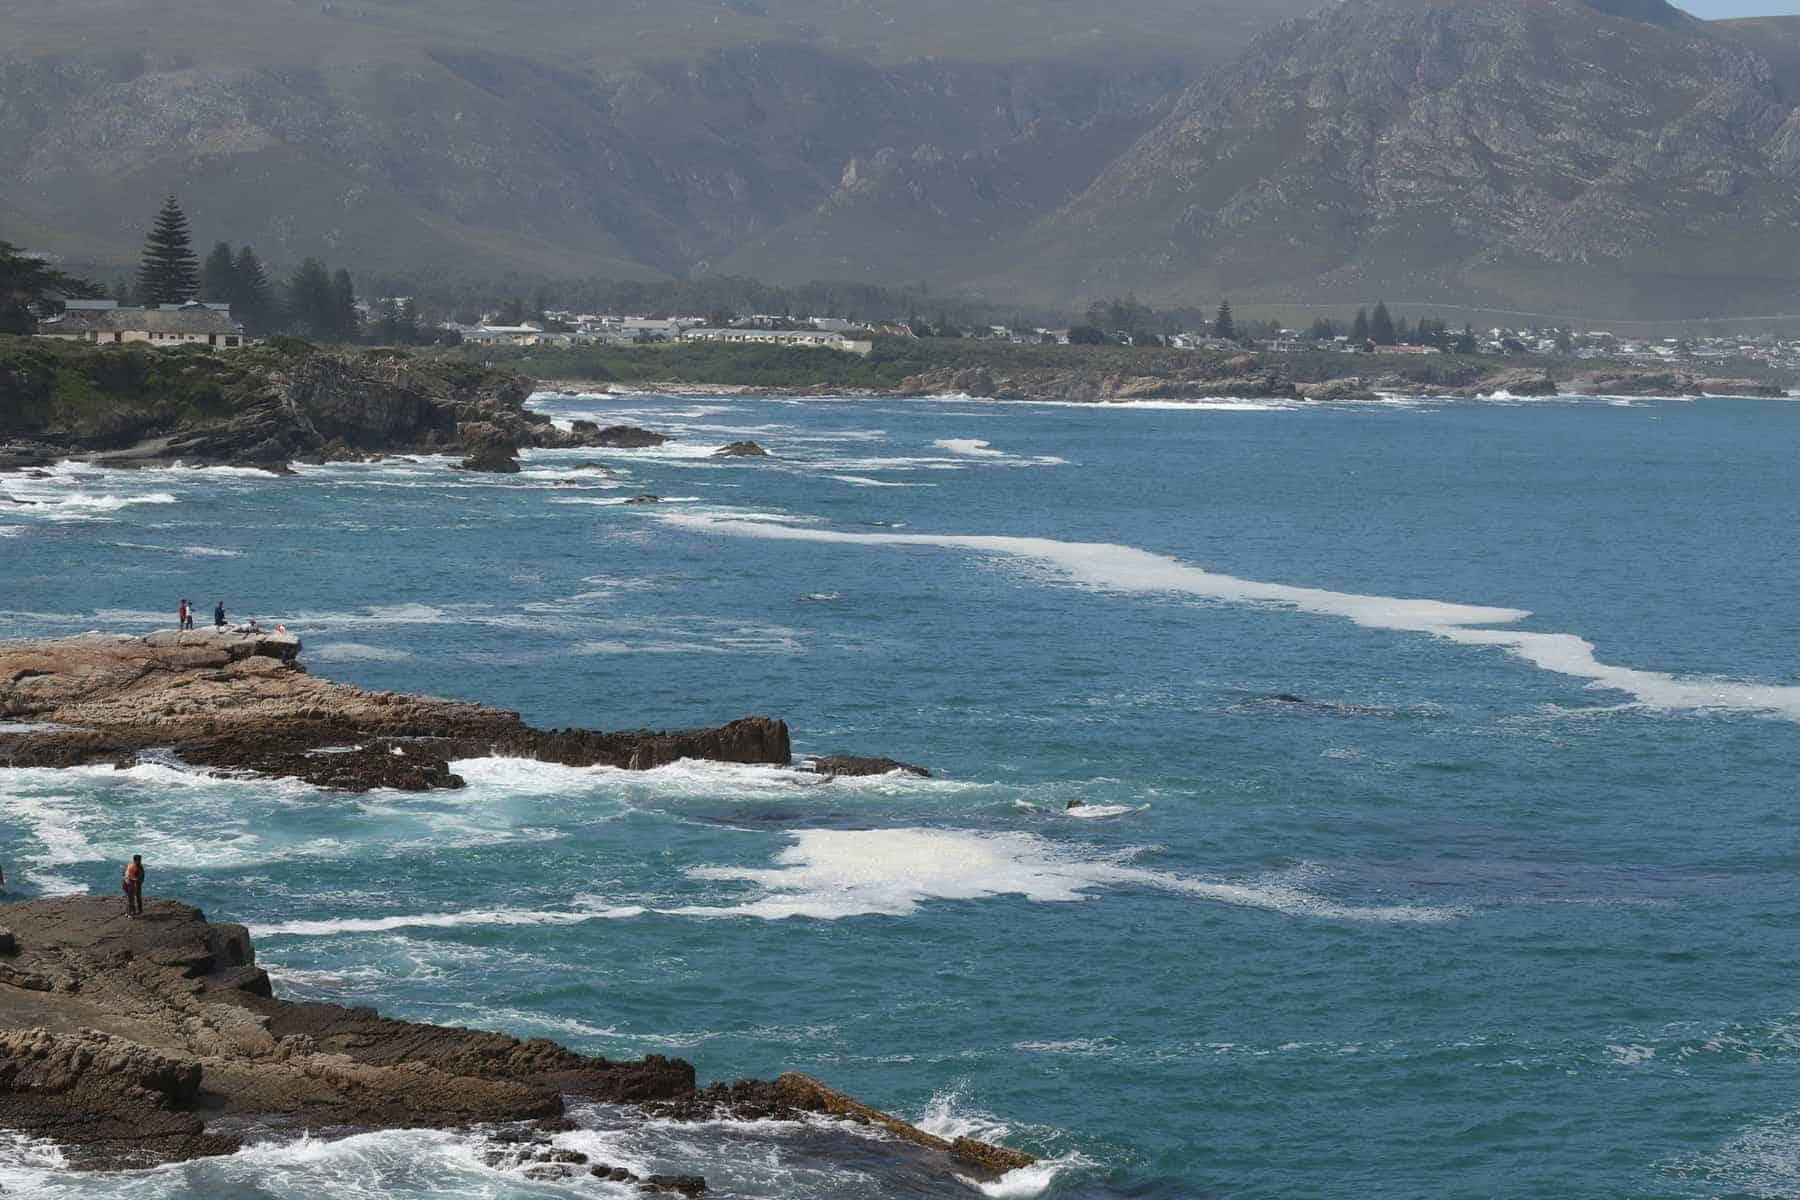 Hermanus on the coast of South Africa is a popular spot to watch the Southern Right Whales from June - November.